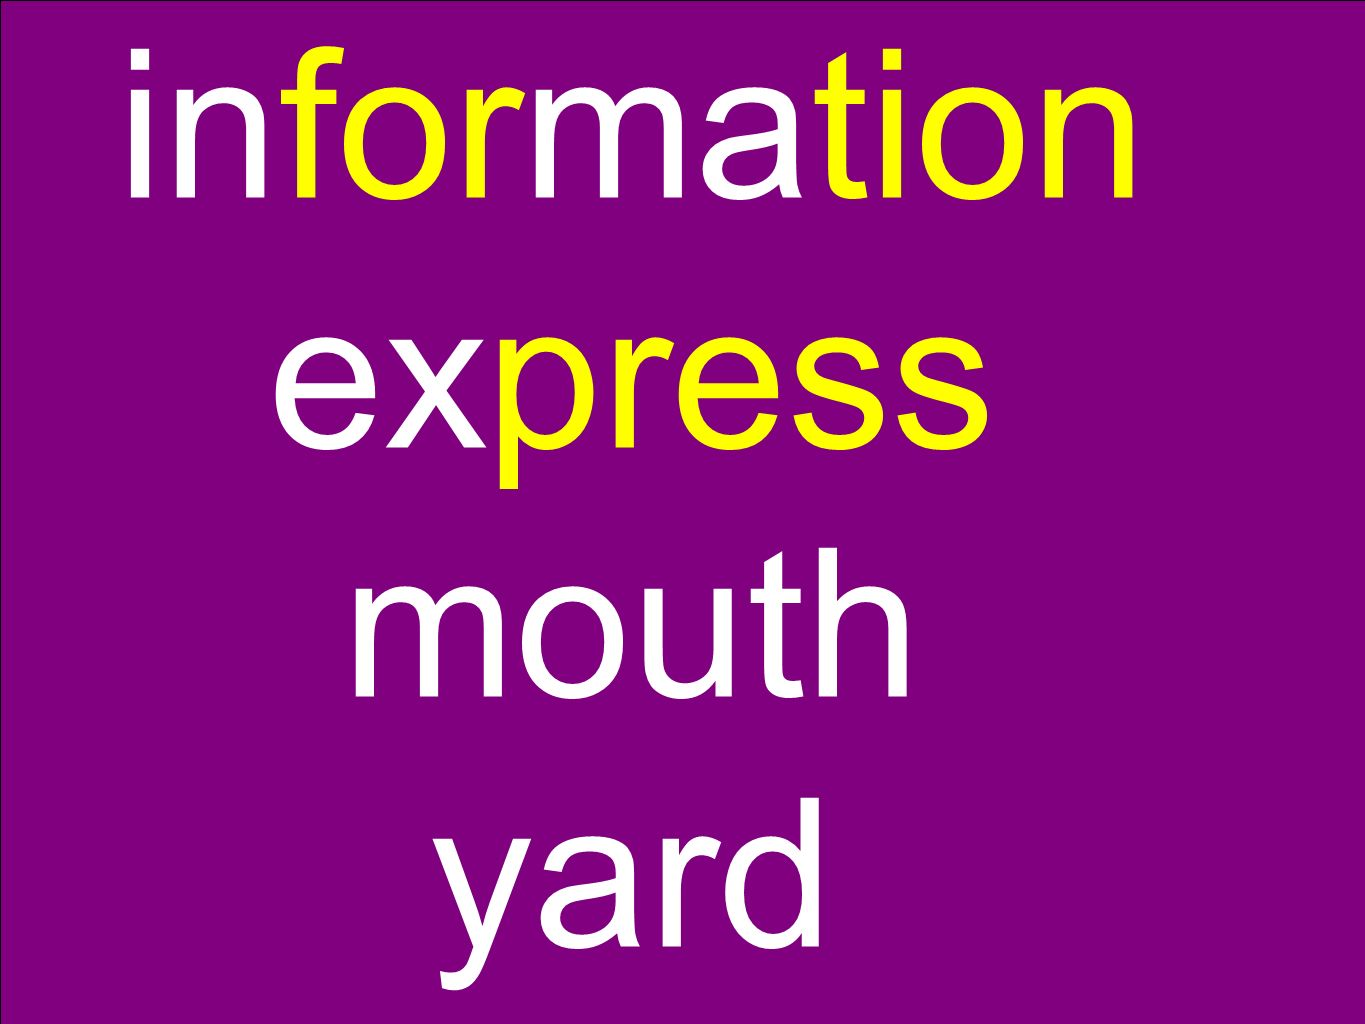 information express mouth yard